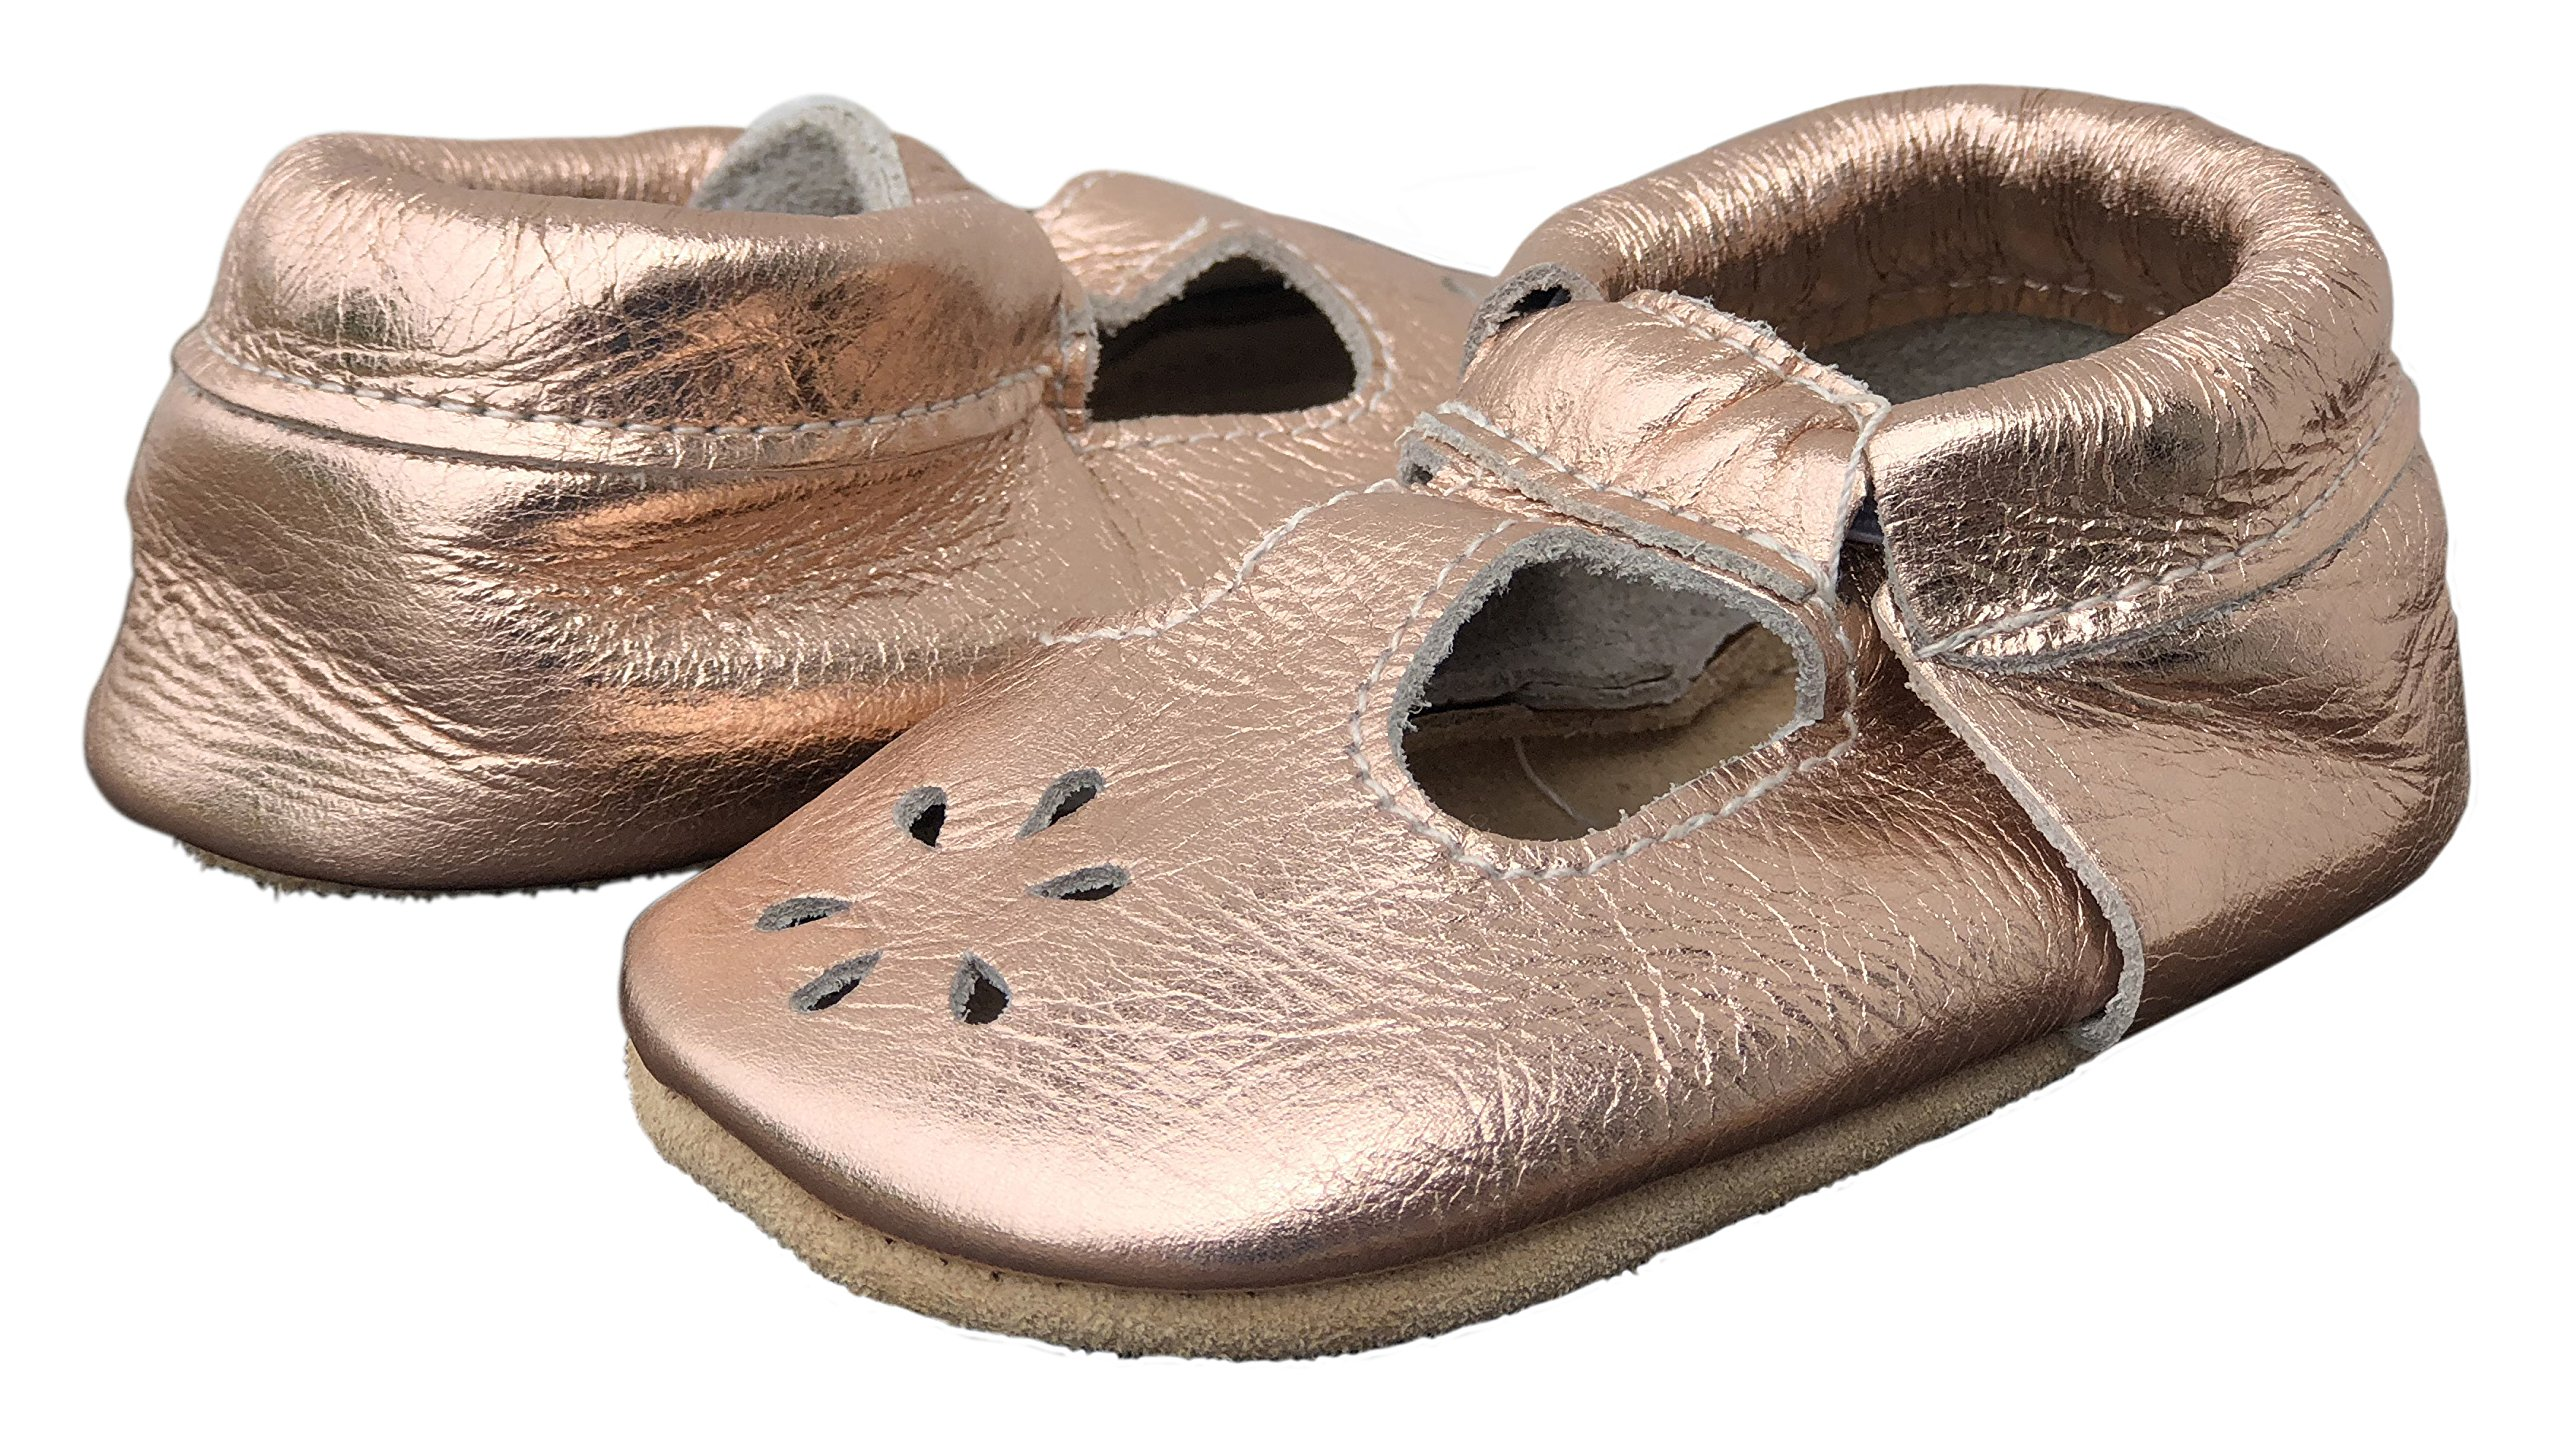 Lucky Love Baby & Toddler Soft Sole Prewalker Skid Resistant Boys & Girls Shoes (6-12 Months, T-Strap Rose Gold)